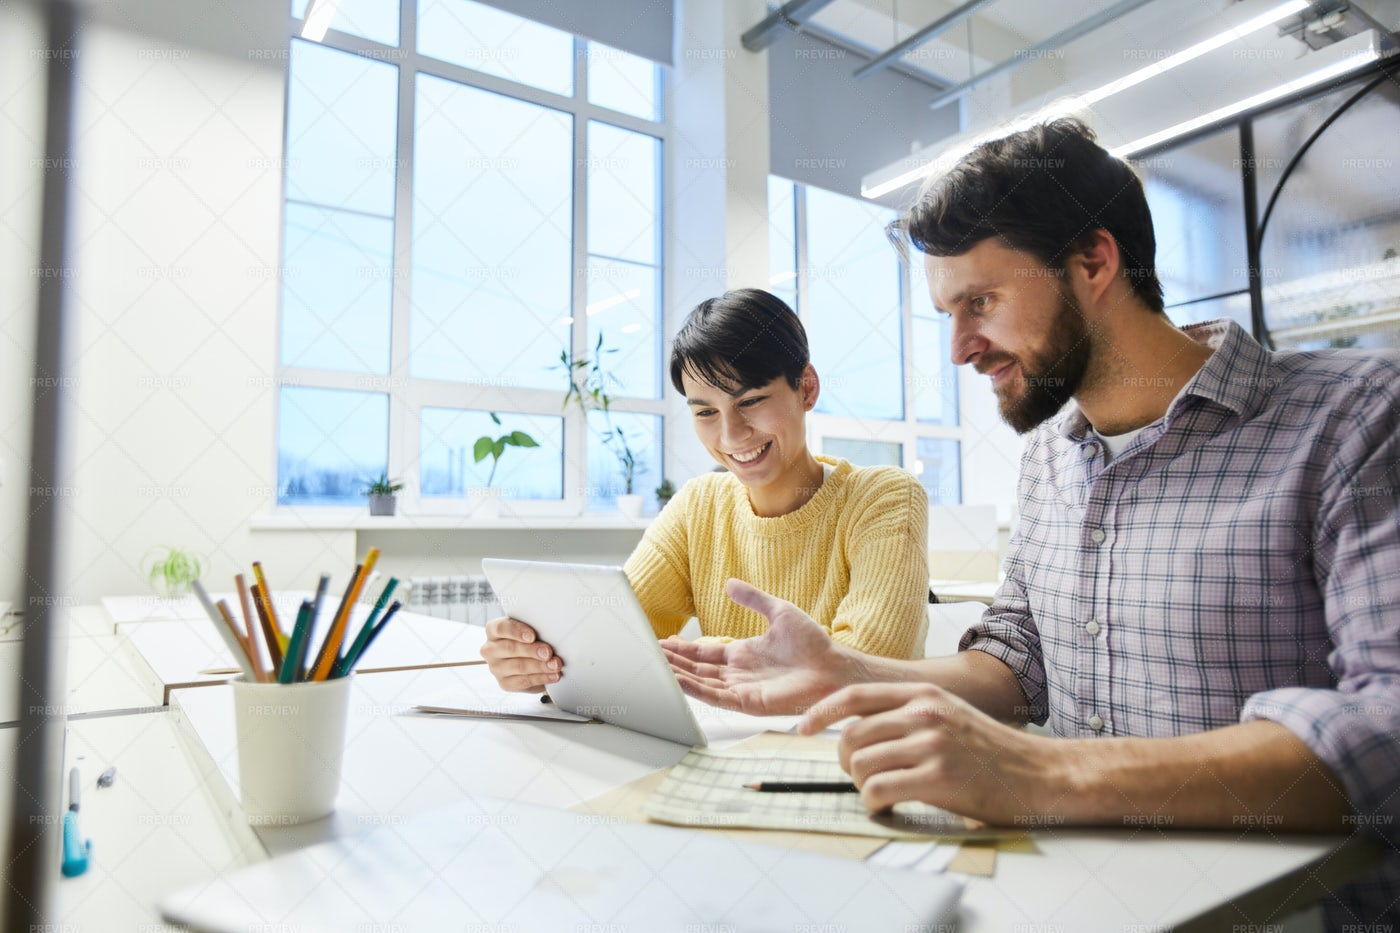 Positive Colleagues Discussing...: Stock Photos